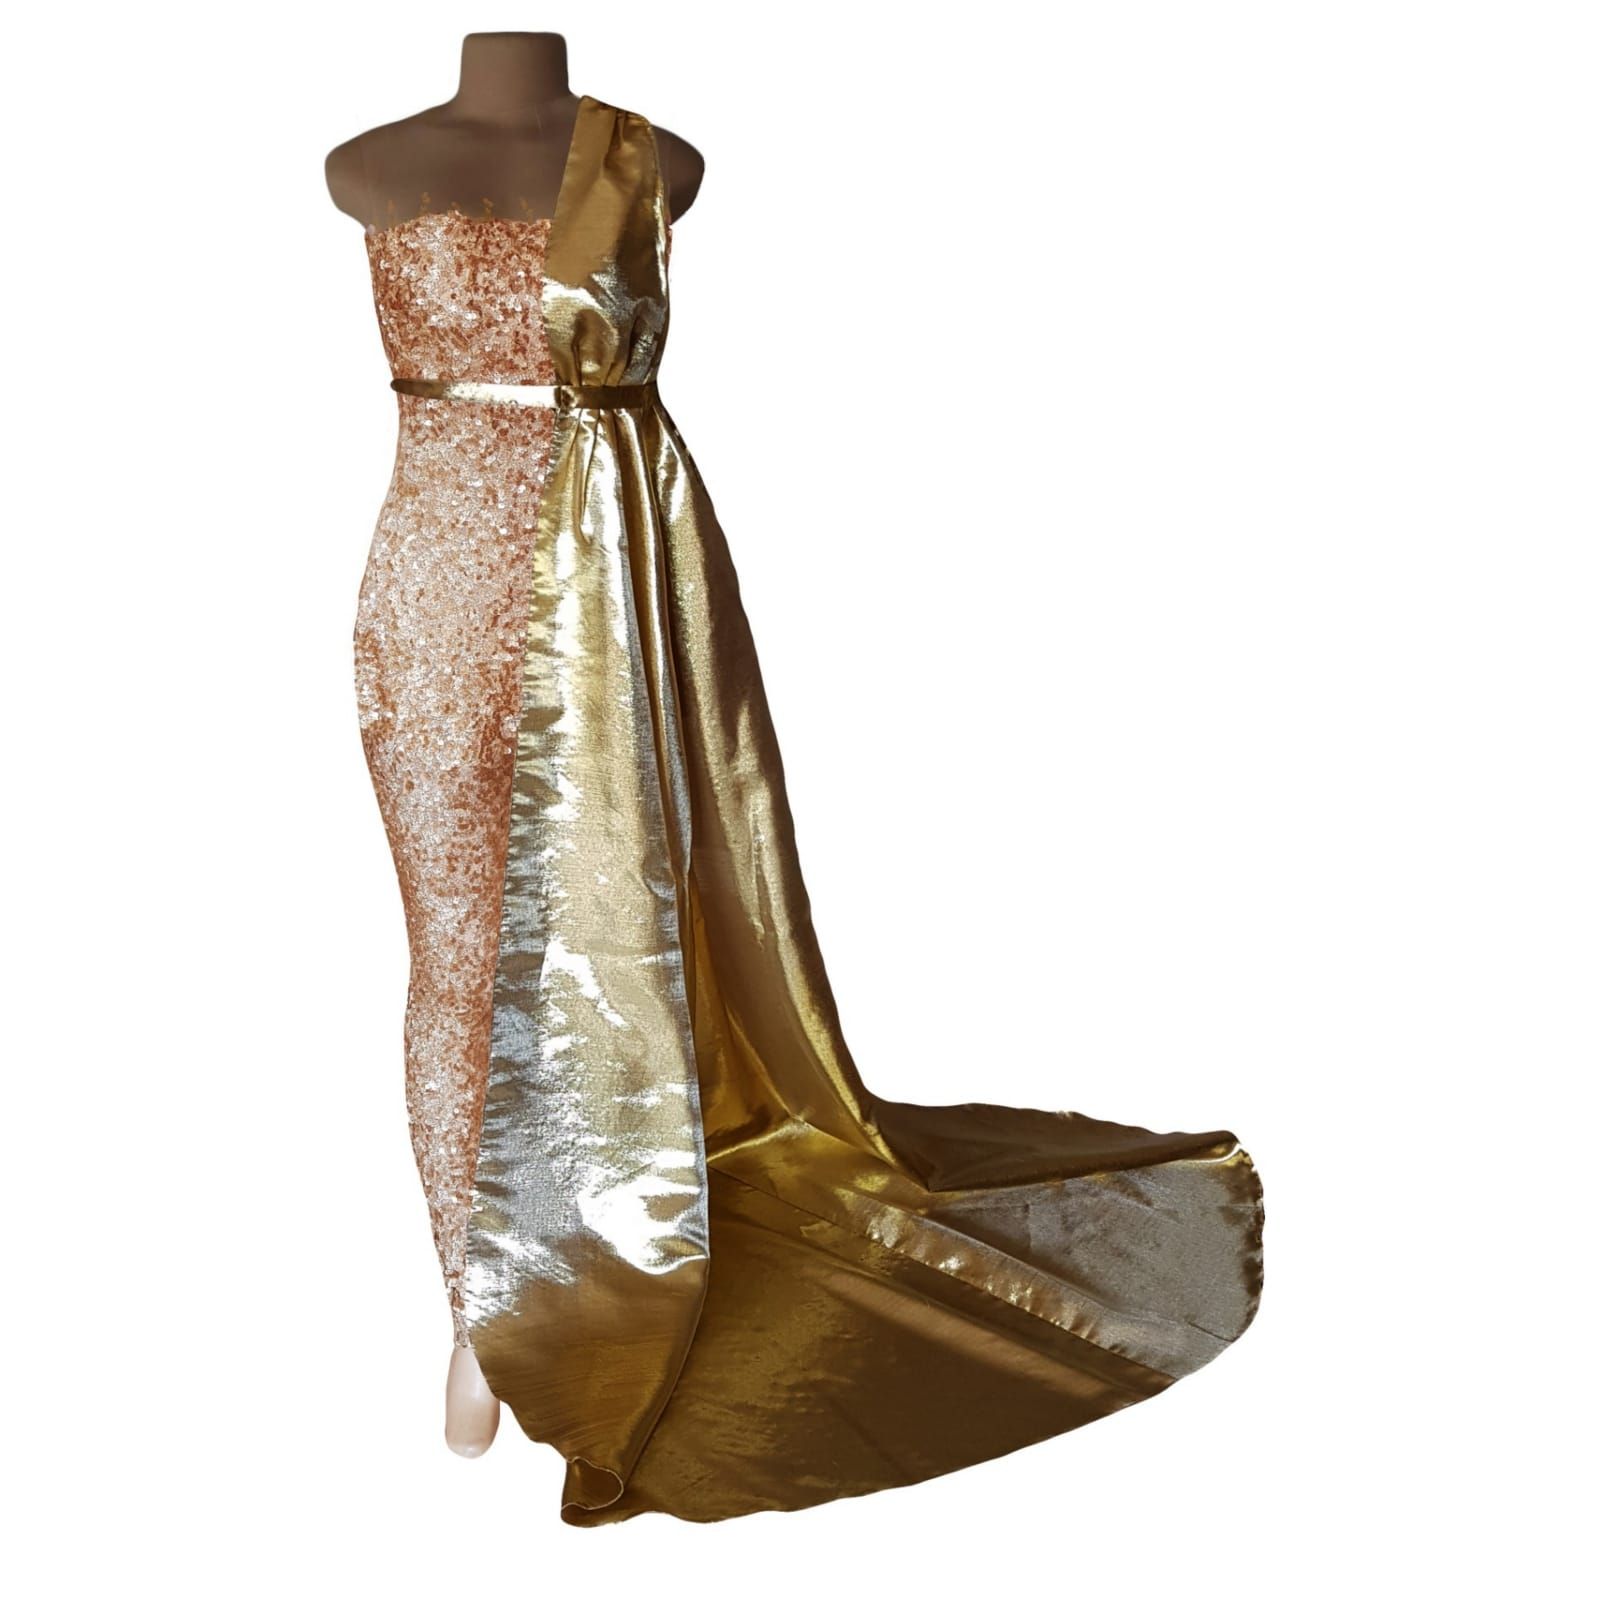 Gold sequins evening wear bodysuit 4 gold sequins evening wear bodysuit with an illusion neckline and sleeves, detailed with gold beads. With a long and short leg. Detachable side gold train.